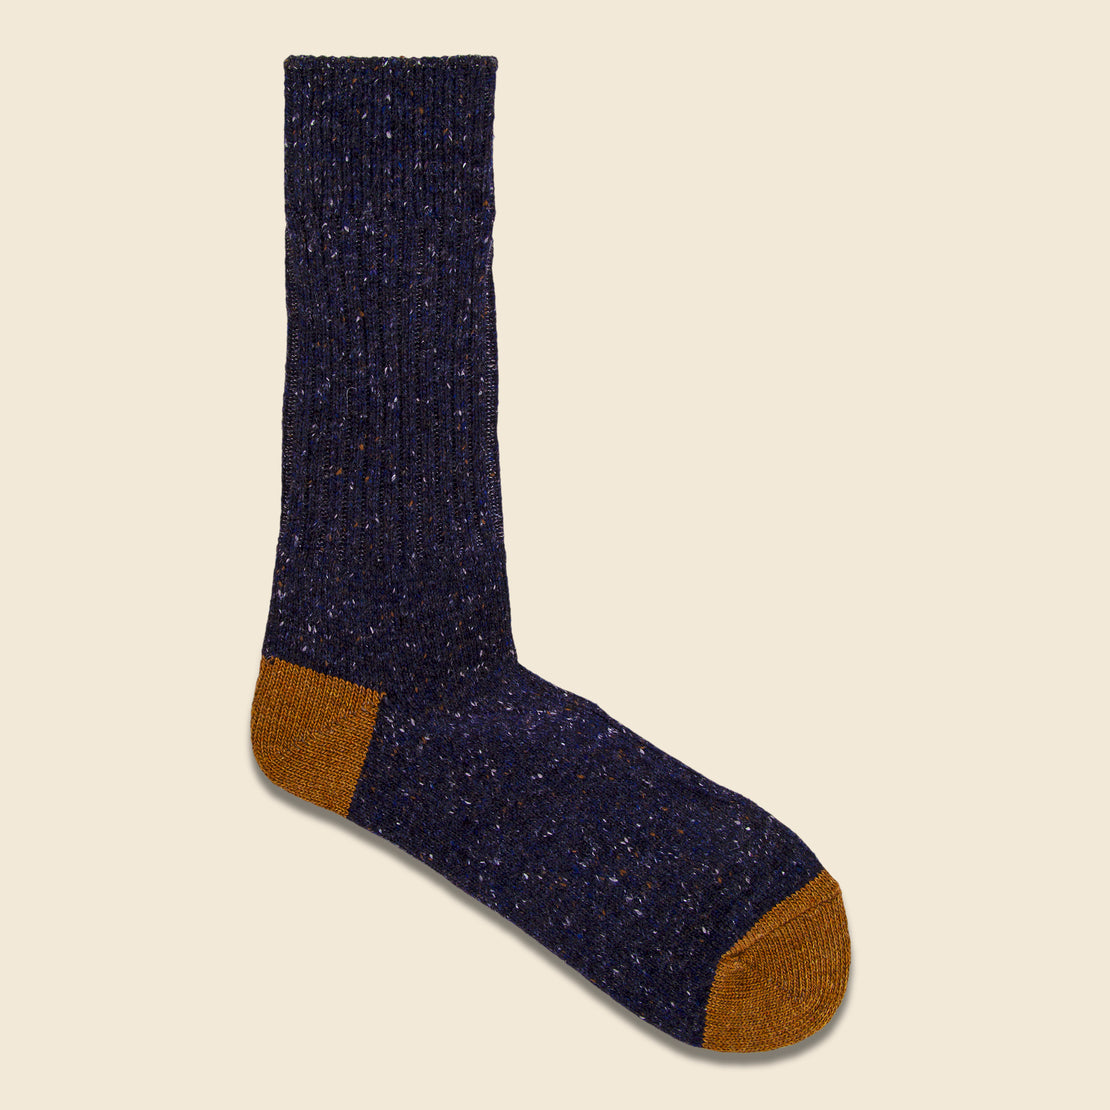 Anonymous Ism Tweed Nep Crew Sock - Navy/Tan